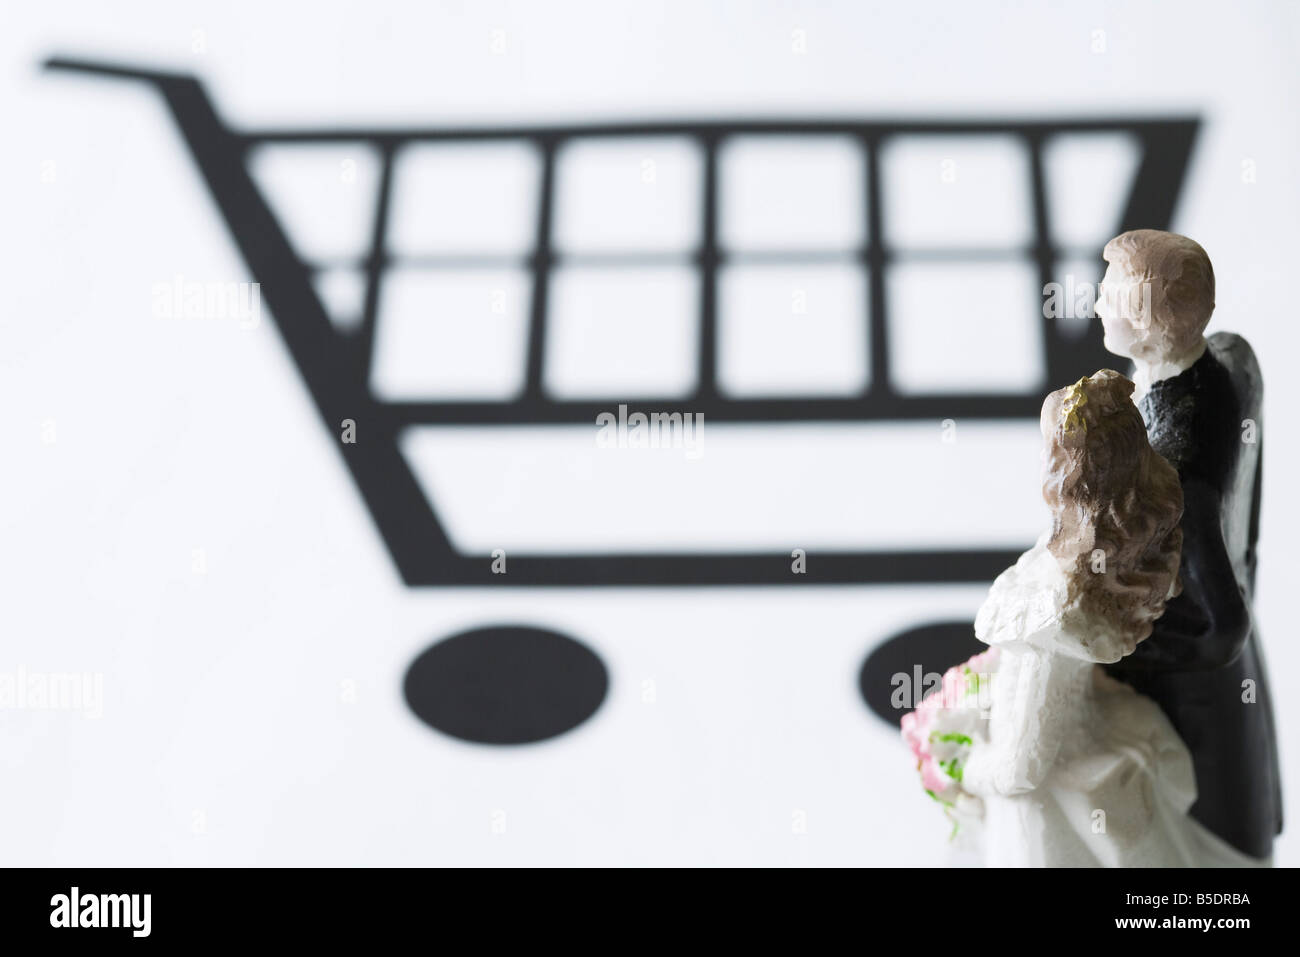 Bride and groom figures looking at shopping cart - Stock Image